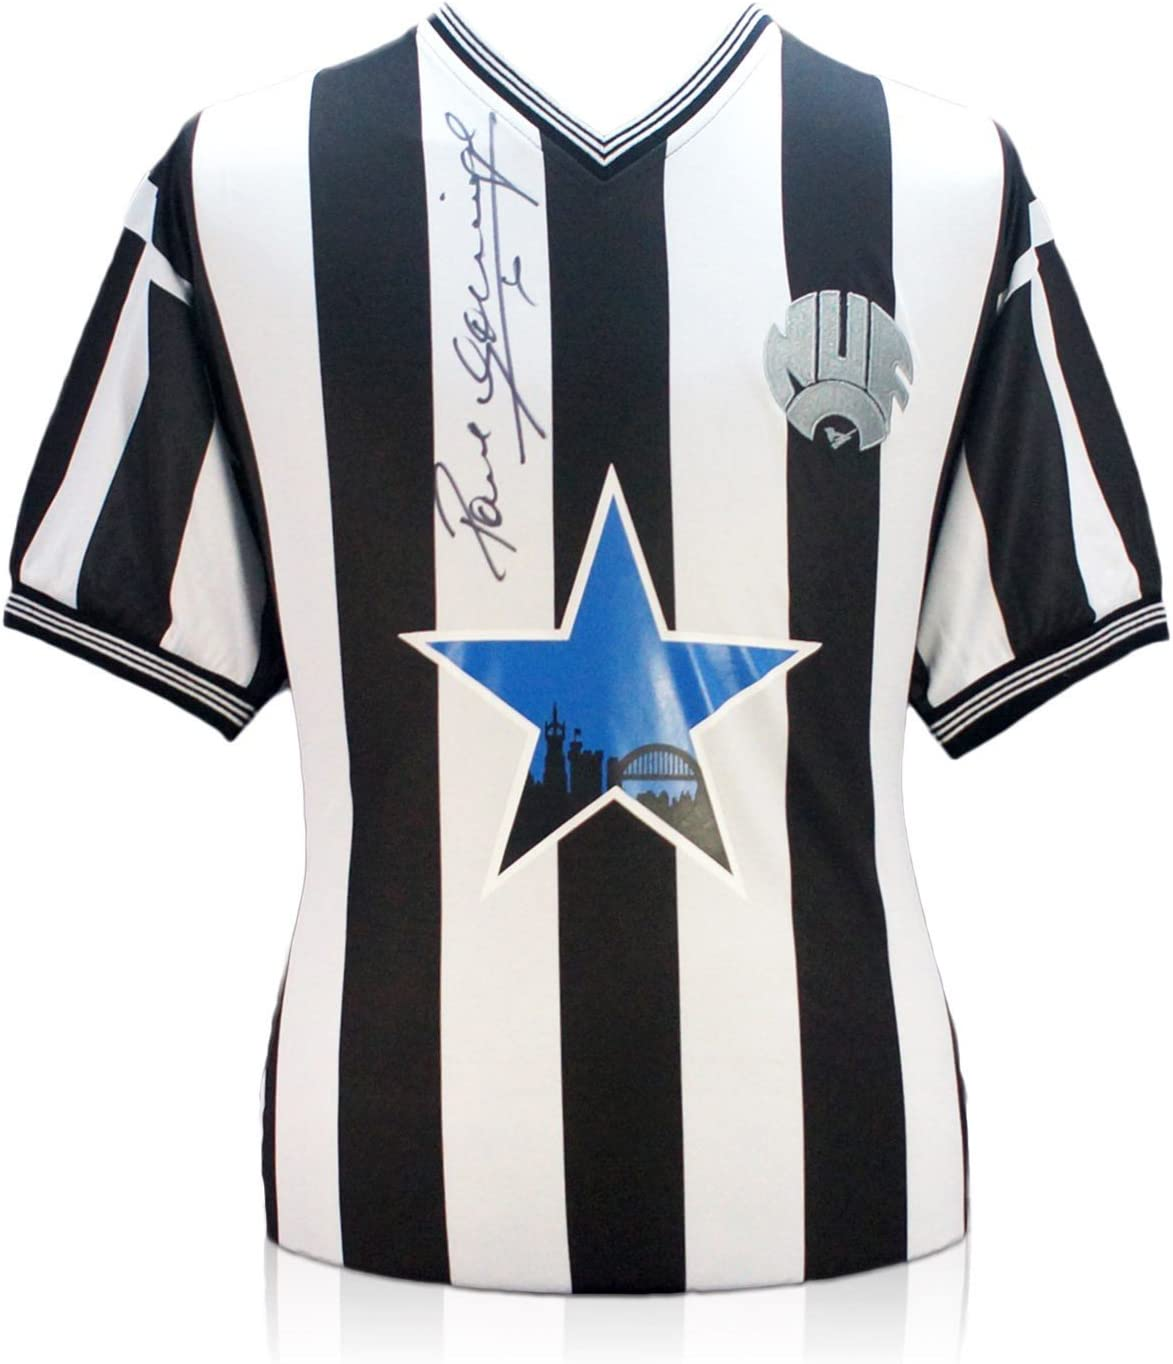 exclusivememorabilia.com Paul Gascoigne Firmado camiseta de Newcastle United: Amazon.es: Deportes y aire libre